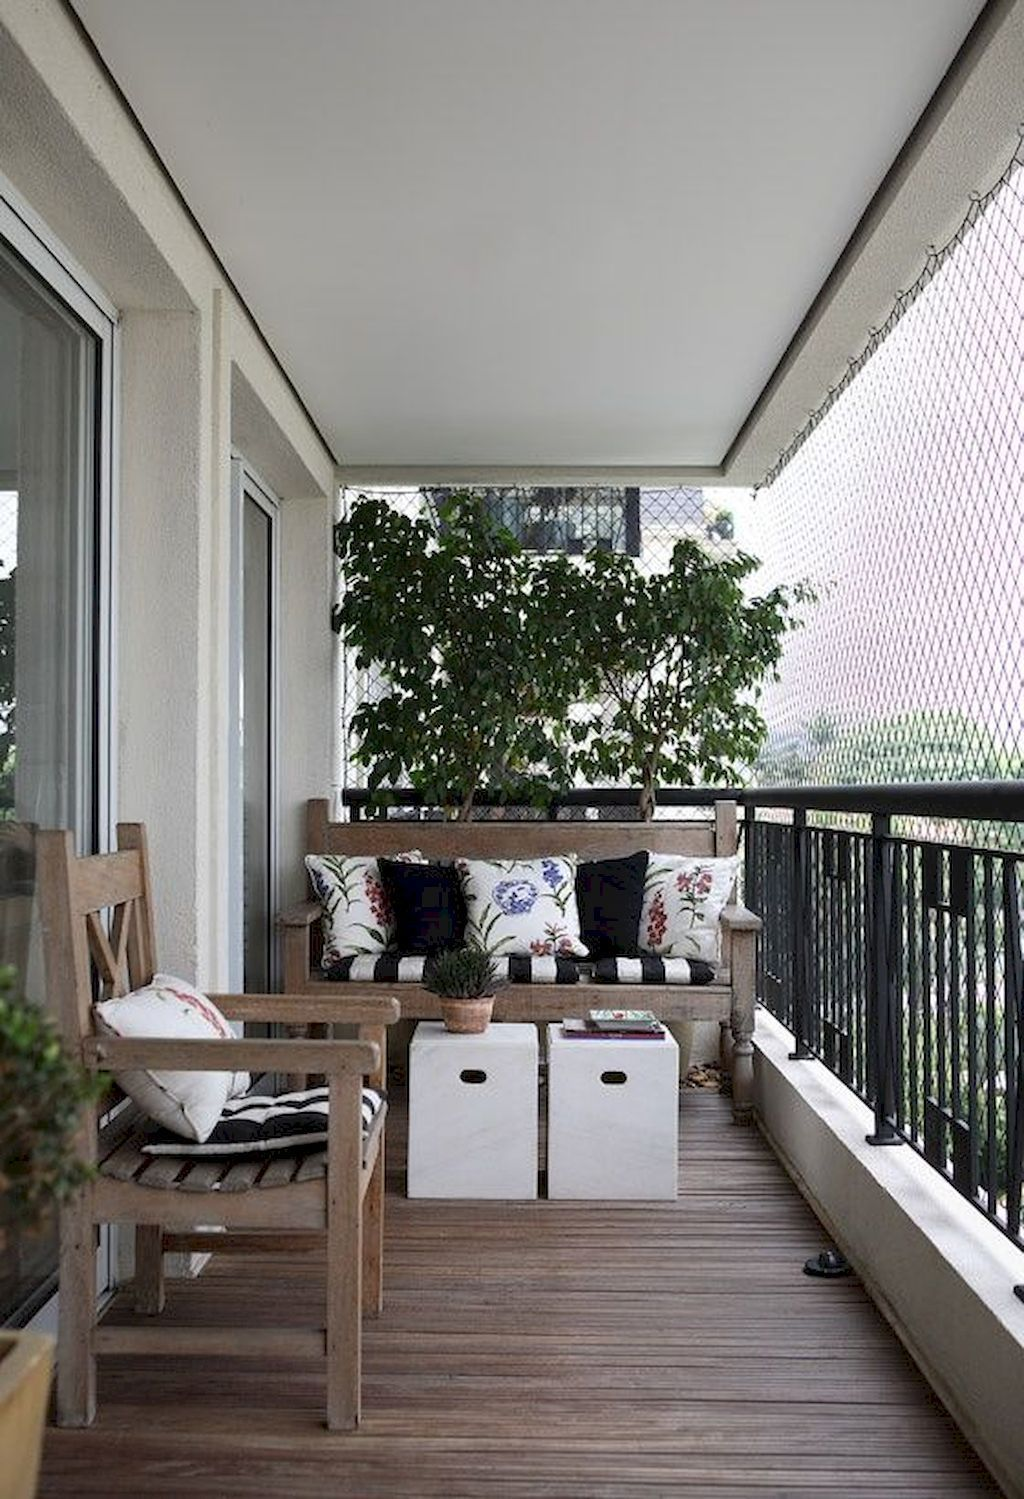 Small Apartment Balcony Garden Ideas: 01 Small Apartment Balcony Decorating Ideas In 2019